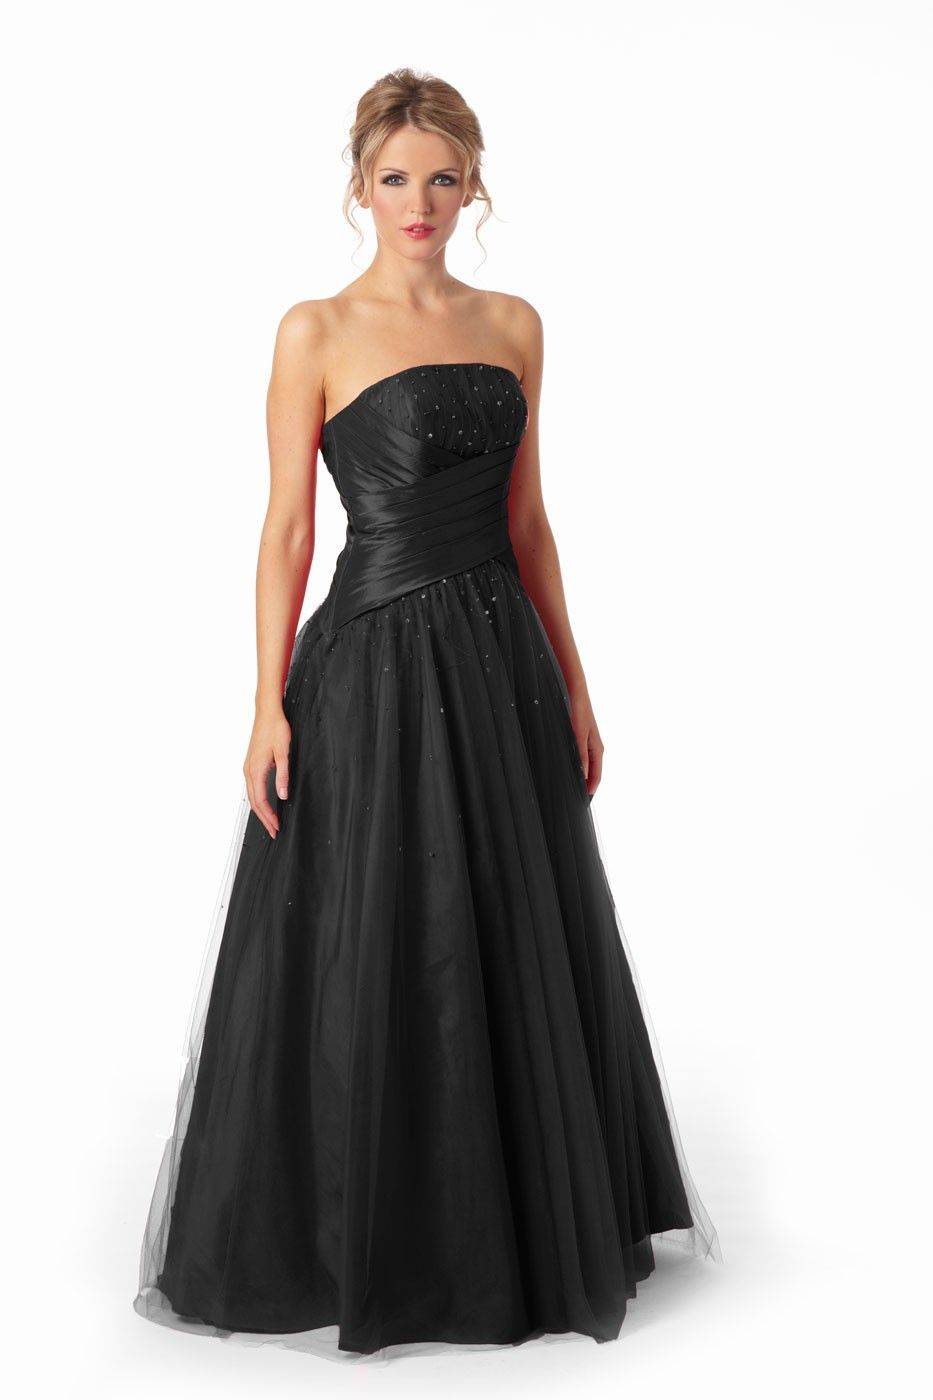 Black gloves for gown - Ava A Stunning Black Tulle Prom Dress Add High Opera Gloves For A Classic Hepburn